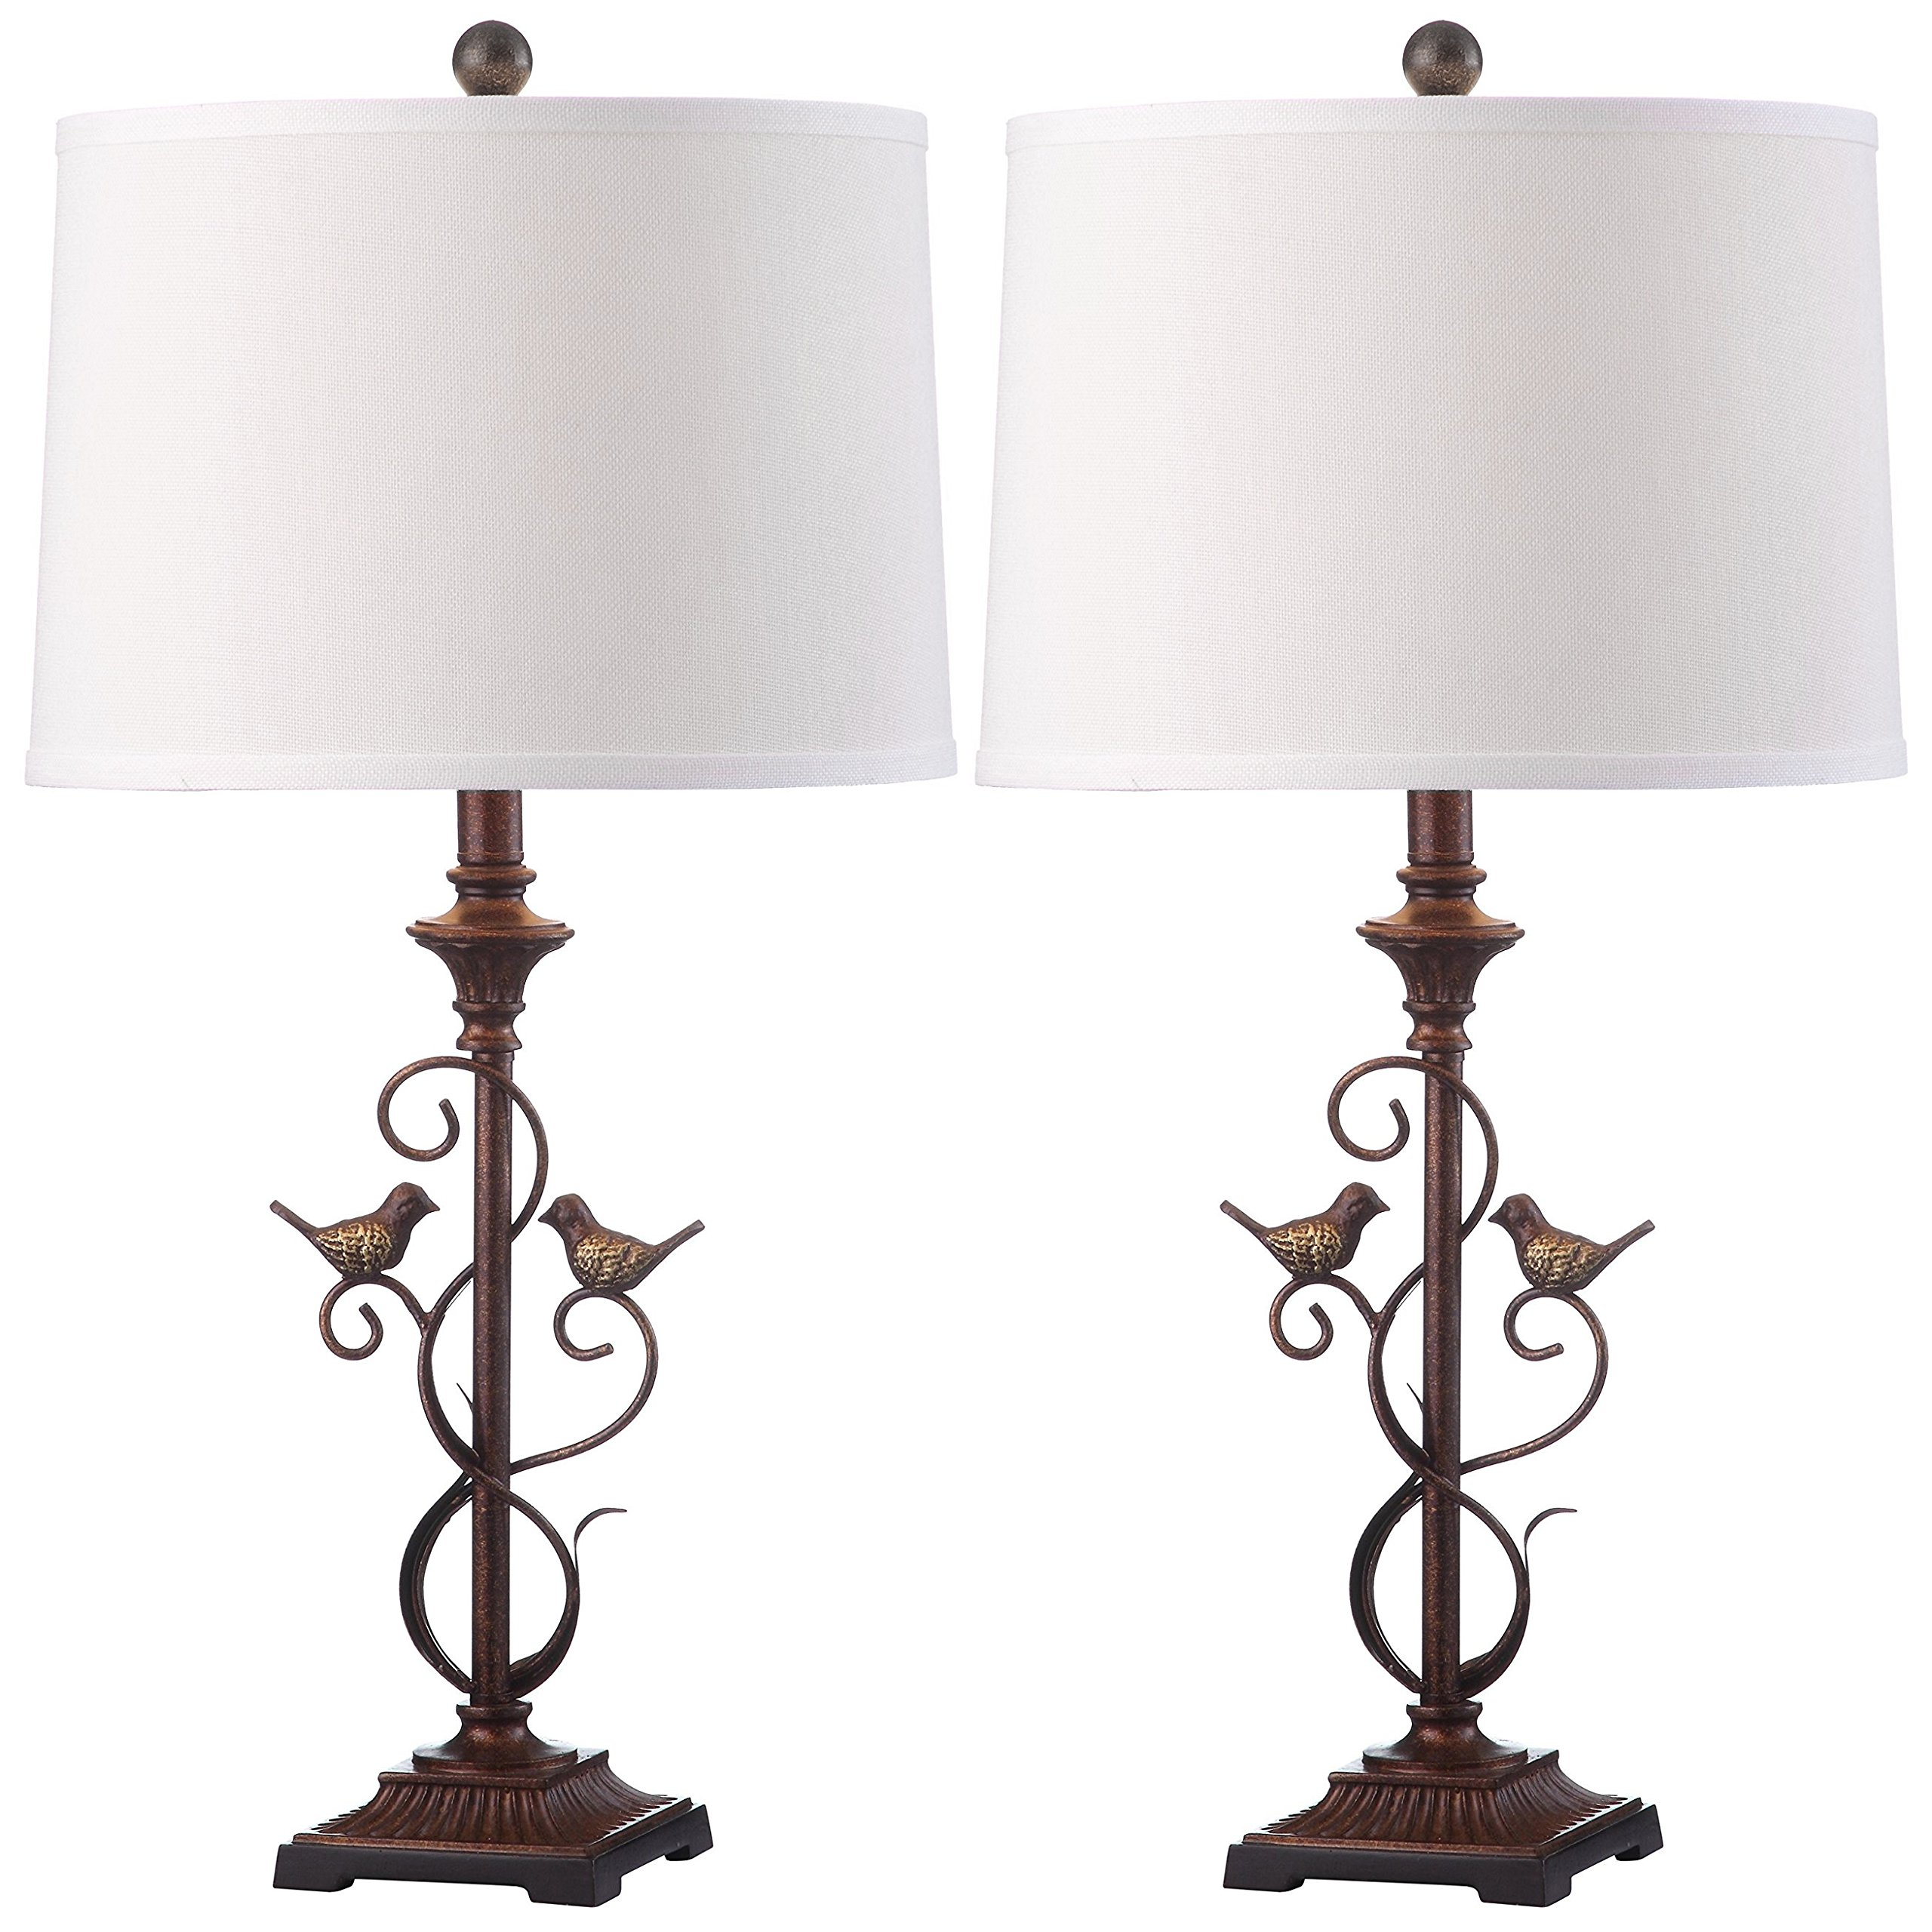 Safavieh Lighting Collection Birdsong Oil-Rubbed Bronze 28-inch Table Lamp (Set of 2) by Safavieh